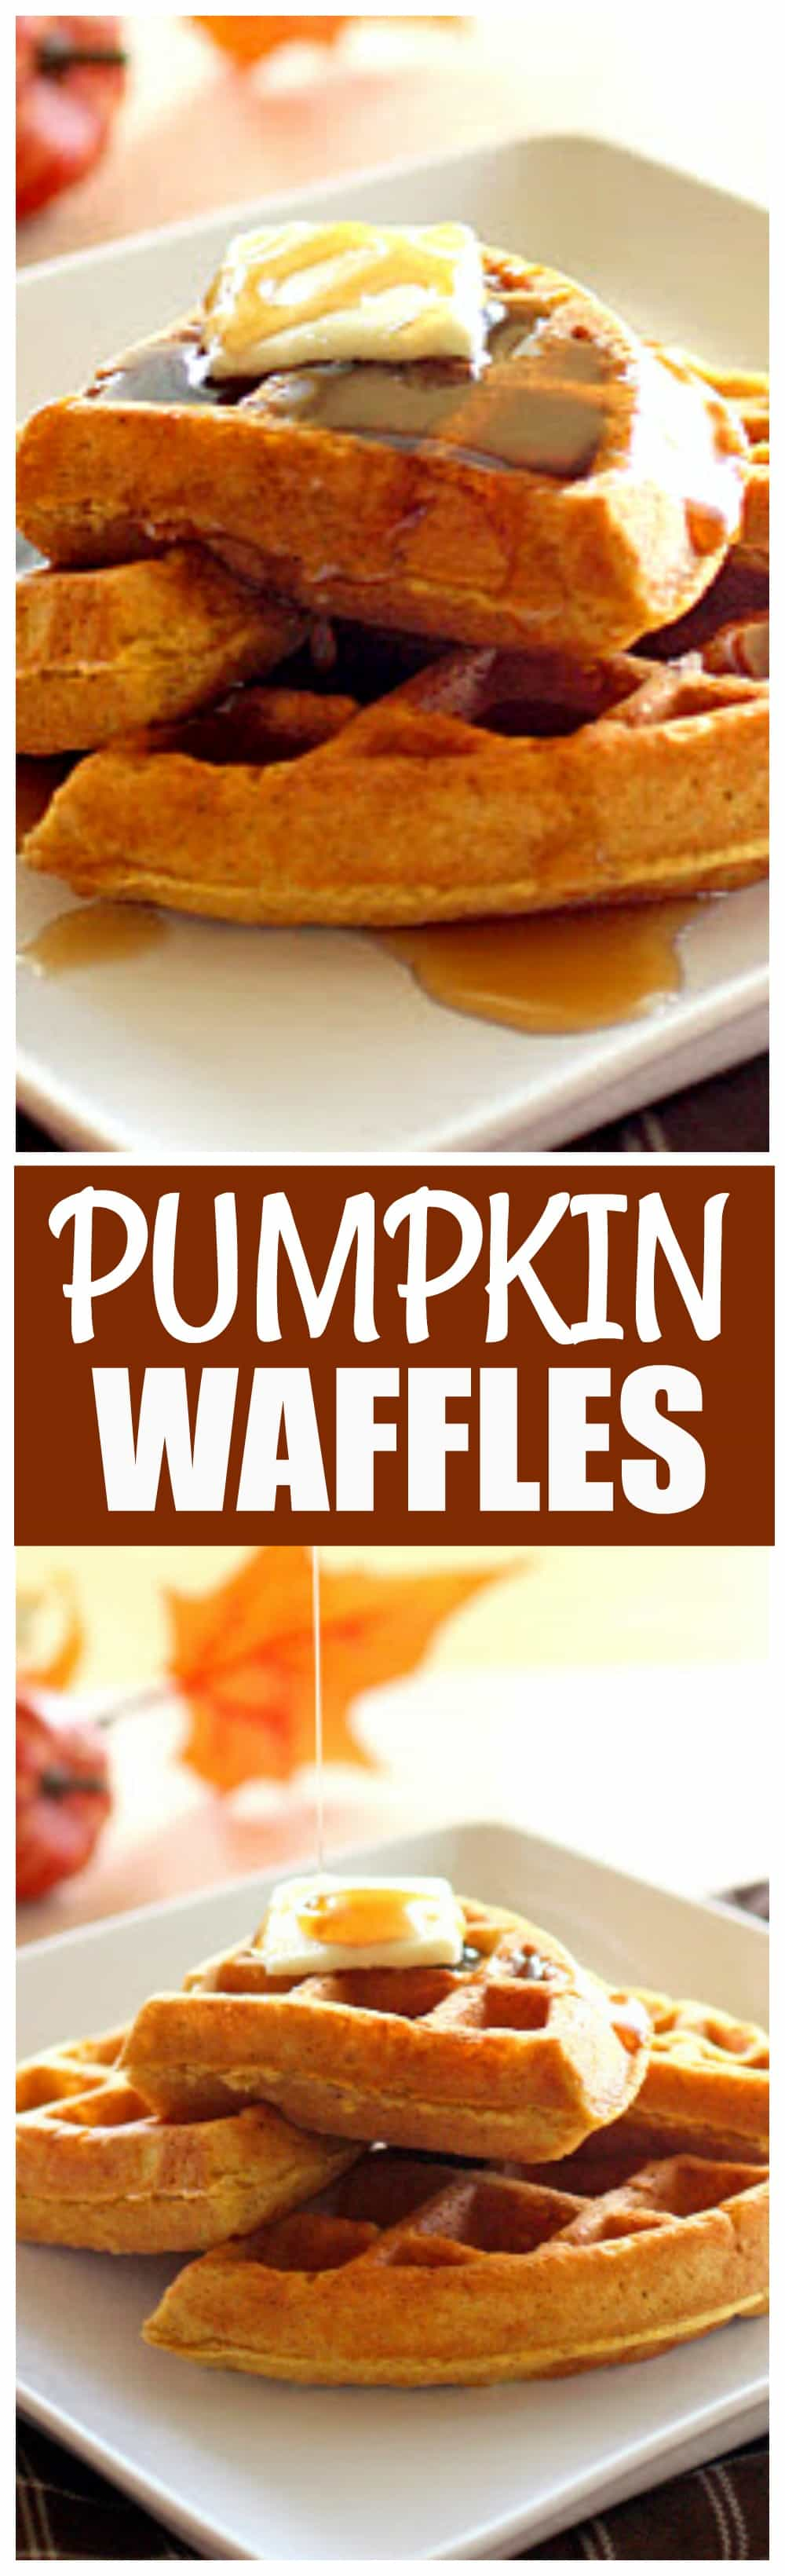 These pumpkin waffles are packed with spices and taste like fall for breakfast! #pumpkin #waffles #fall #breakfast #recipe